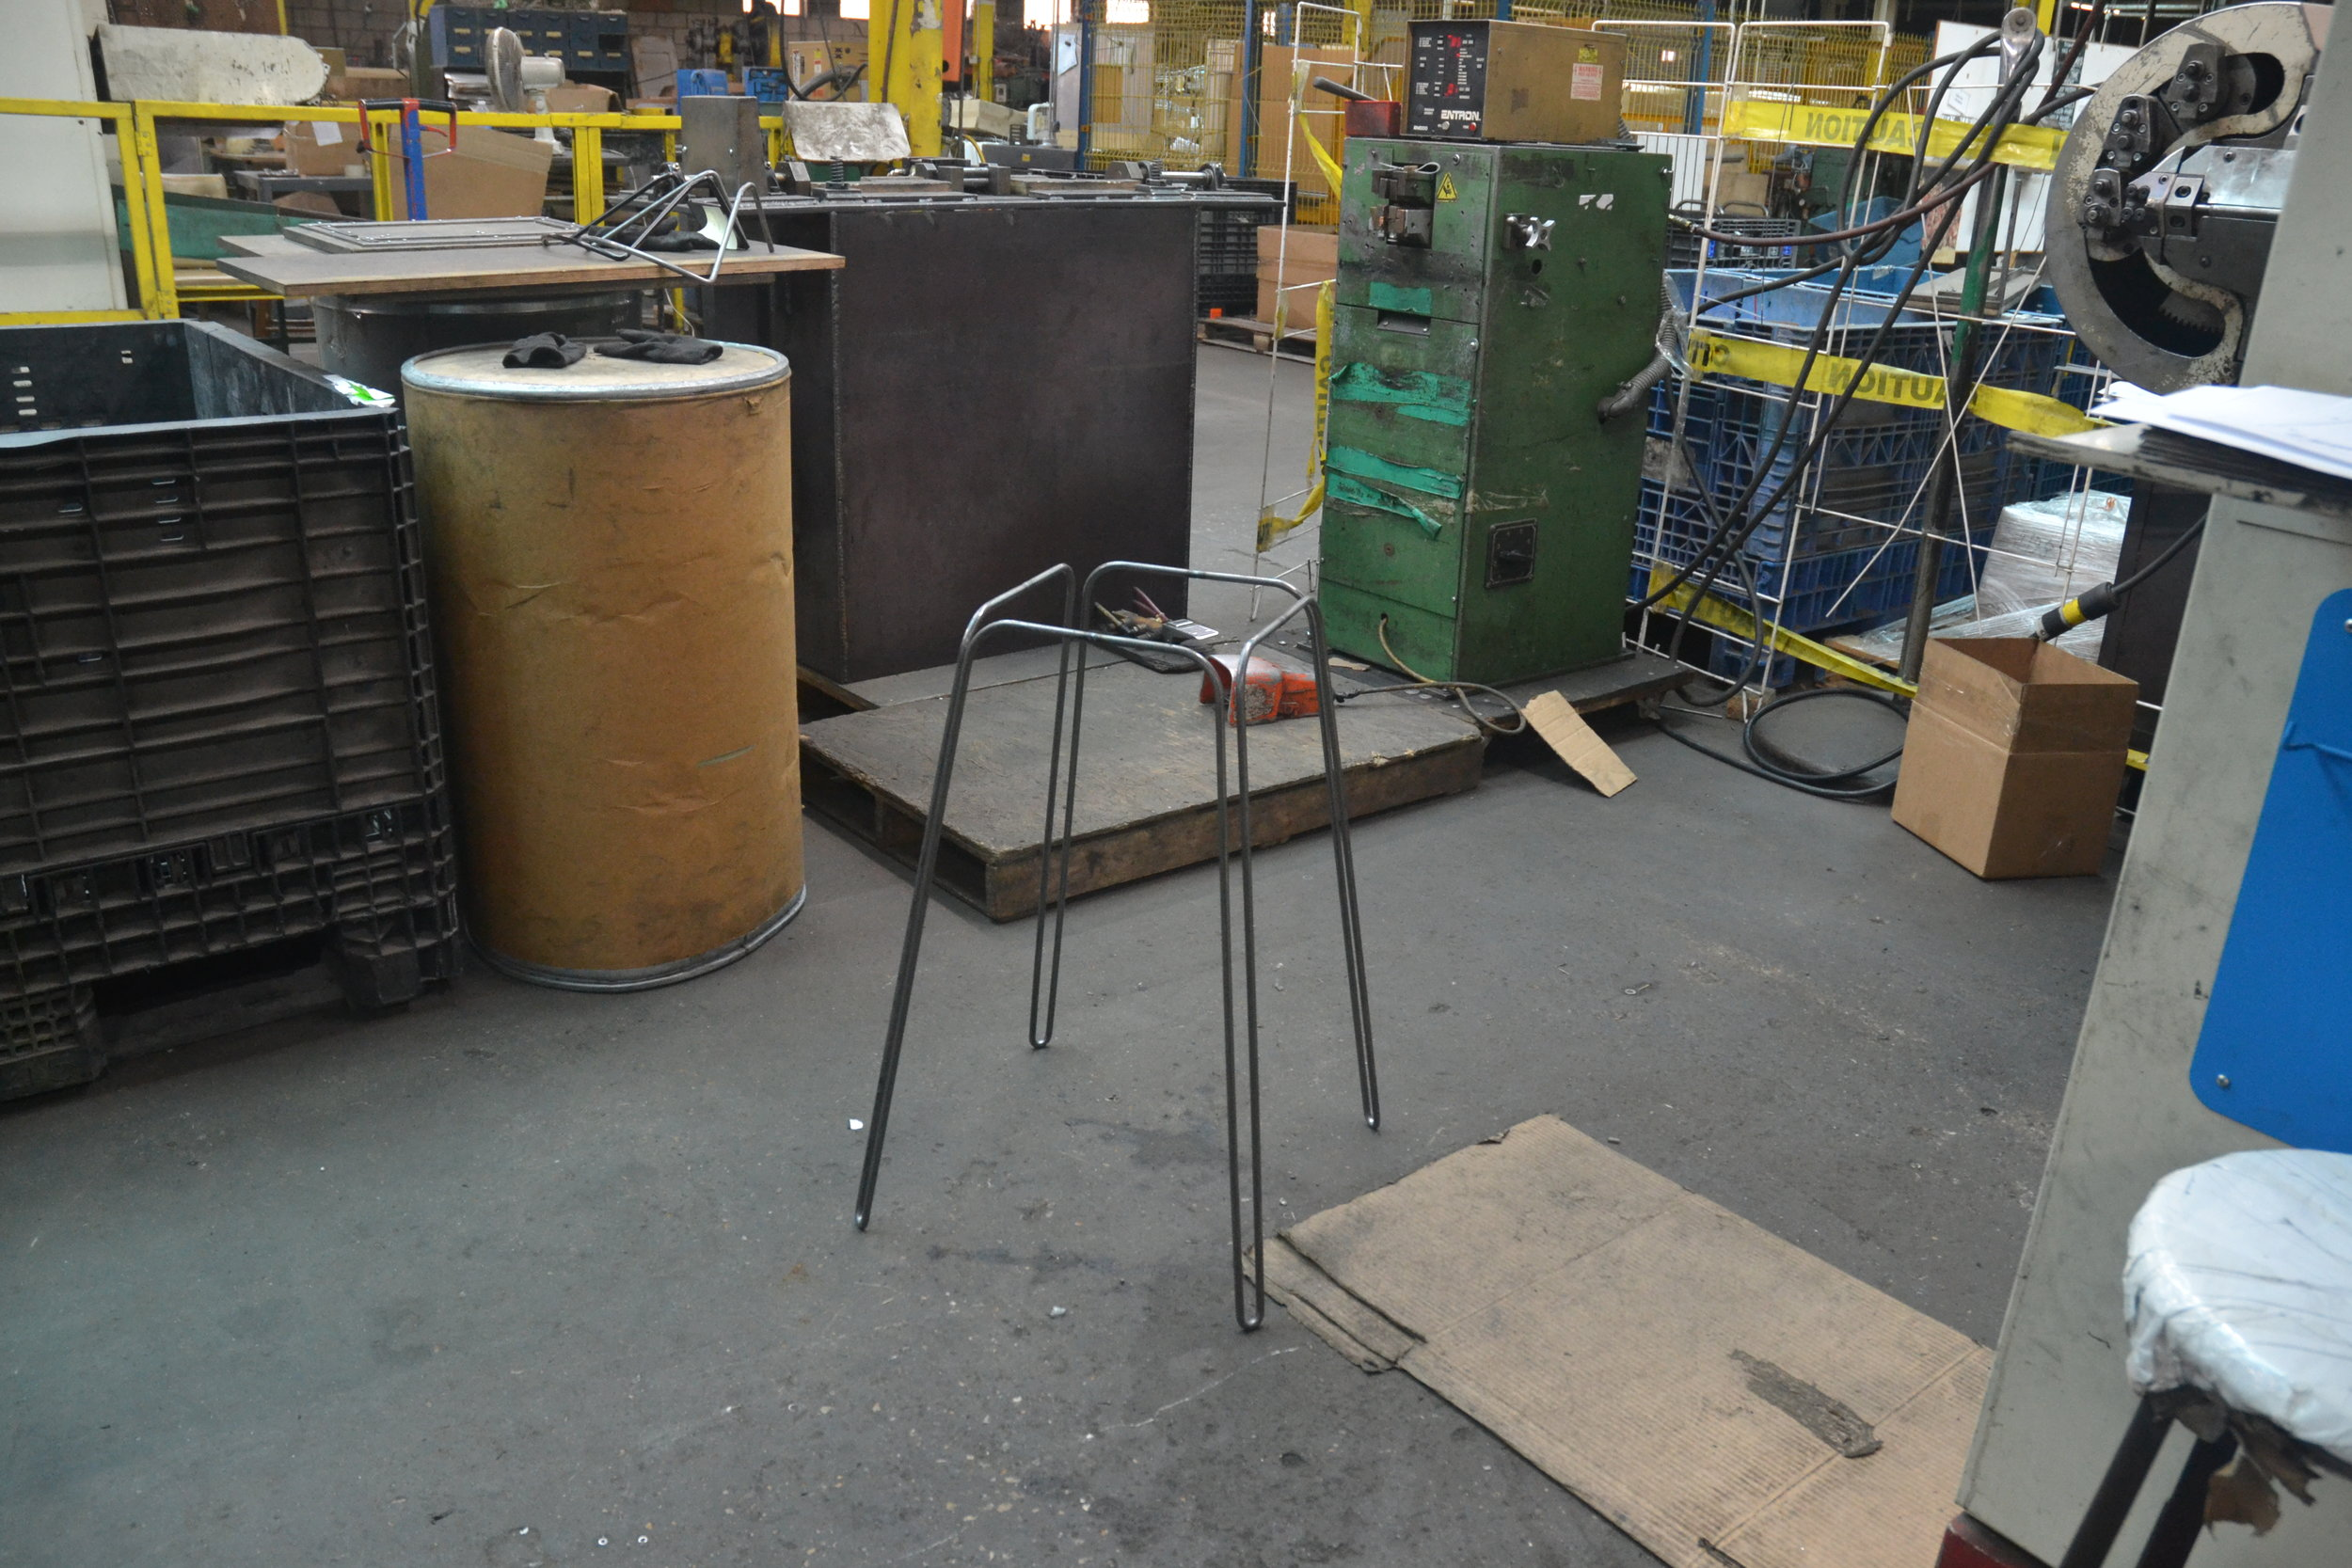 - Welding is where the automated manufacturing moves back to manual. The legs of Stool Nº1 are butt welded and adjusted by hand to reach the final form. Afterwards they have the final details added—the foot rest, the 4 metal tabs that attach the seat, and the optional floor protector feet.